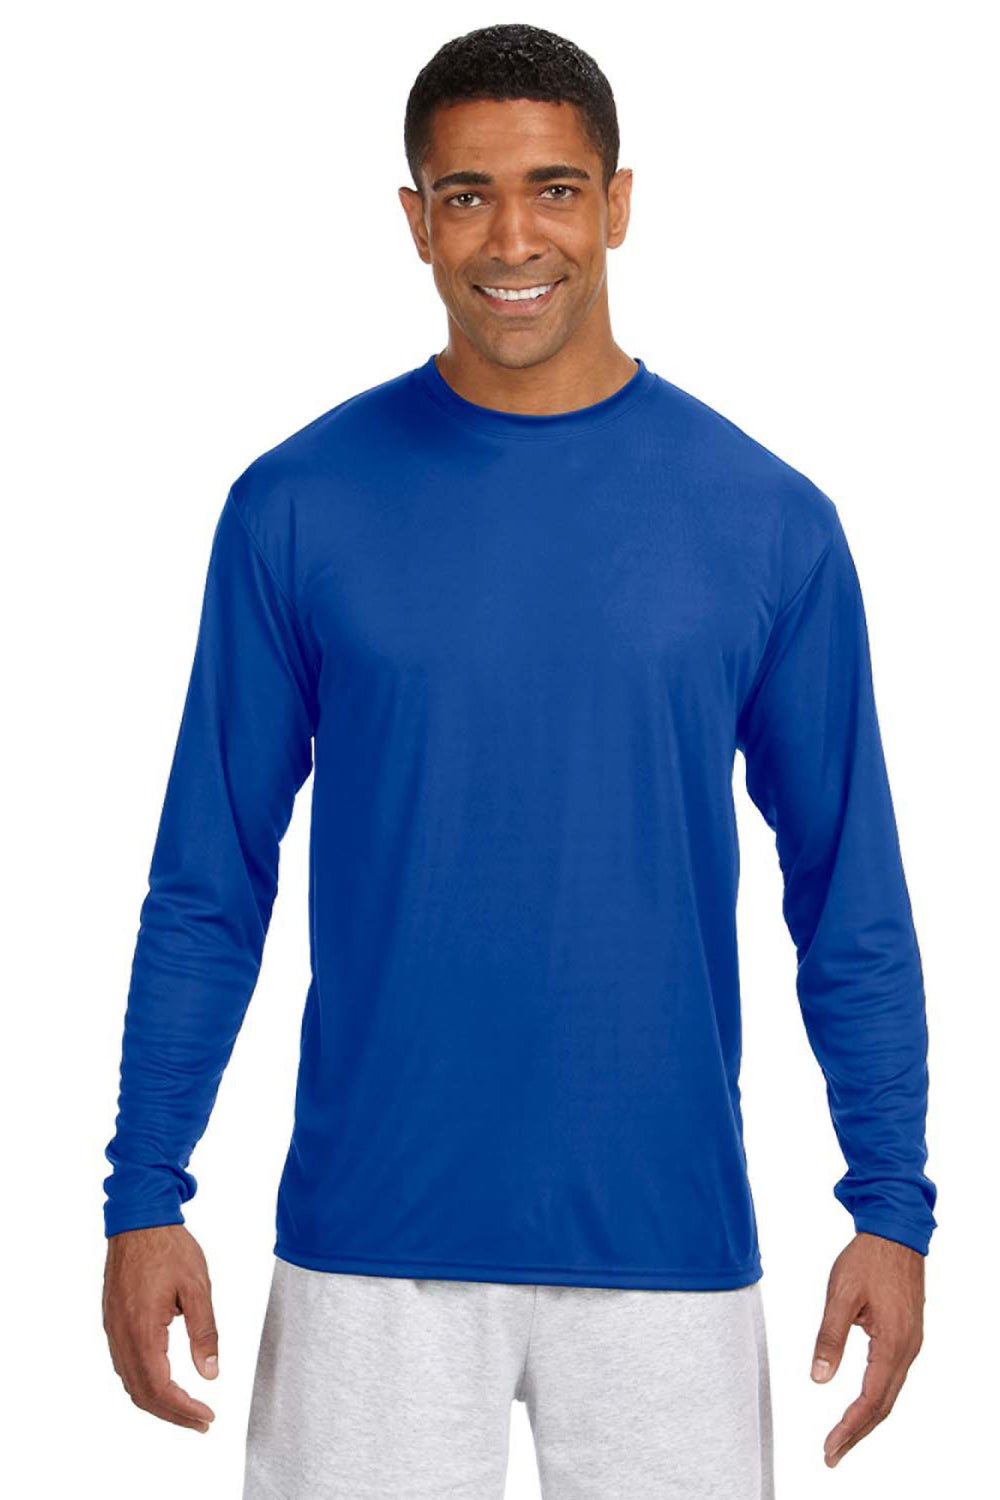 A4 N3165 Mens Cooling Performance Moisture Wicking Long Sleeve Crewneck T-Shirt Royal Blue Front